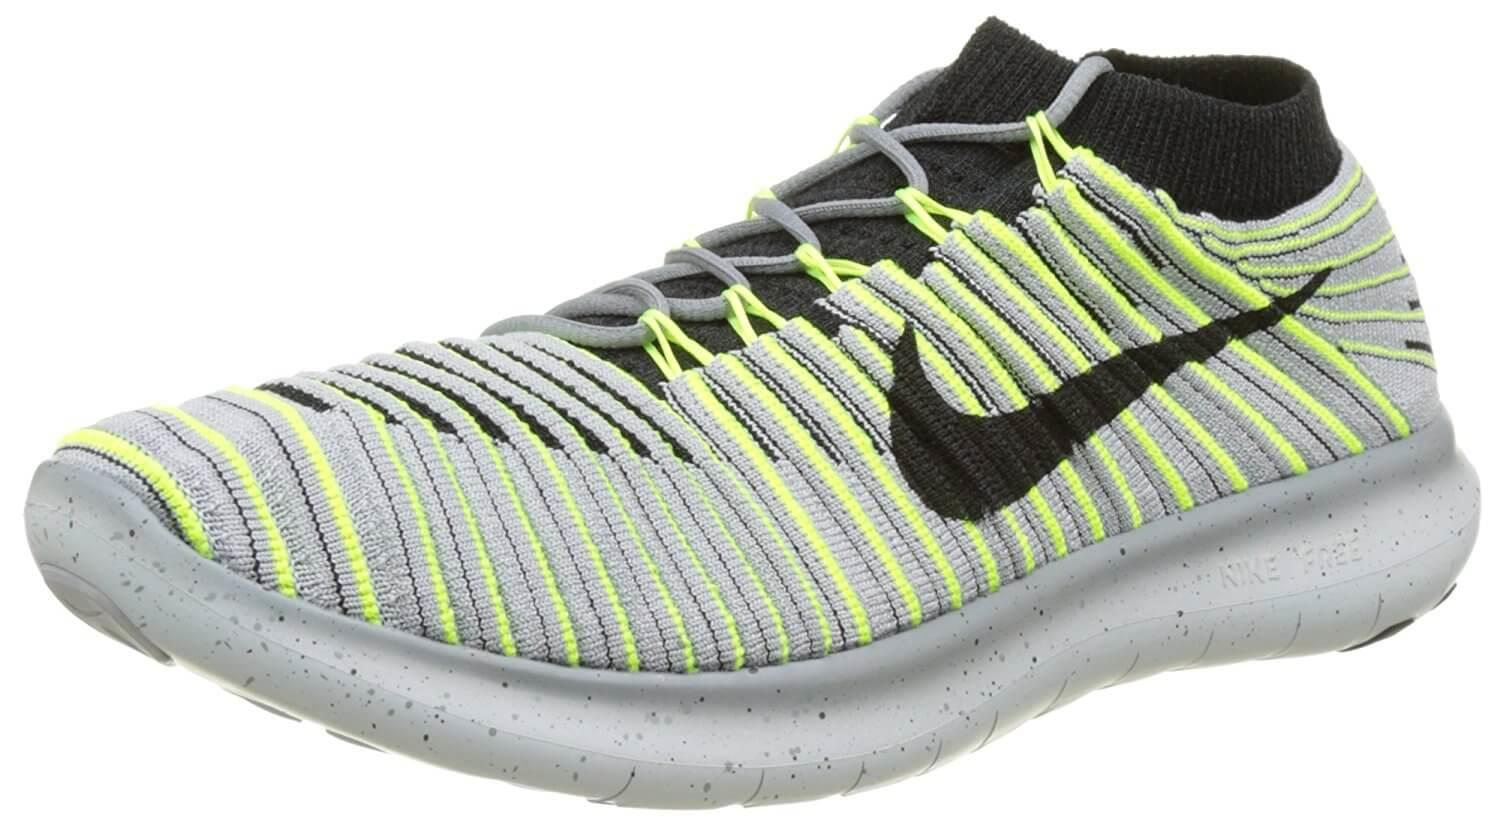 The Nike Free RN Motion Flyknit was designed to accommodate barefoot-style runners.